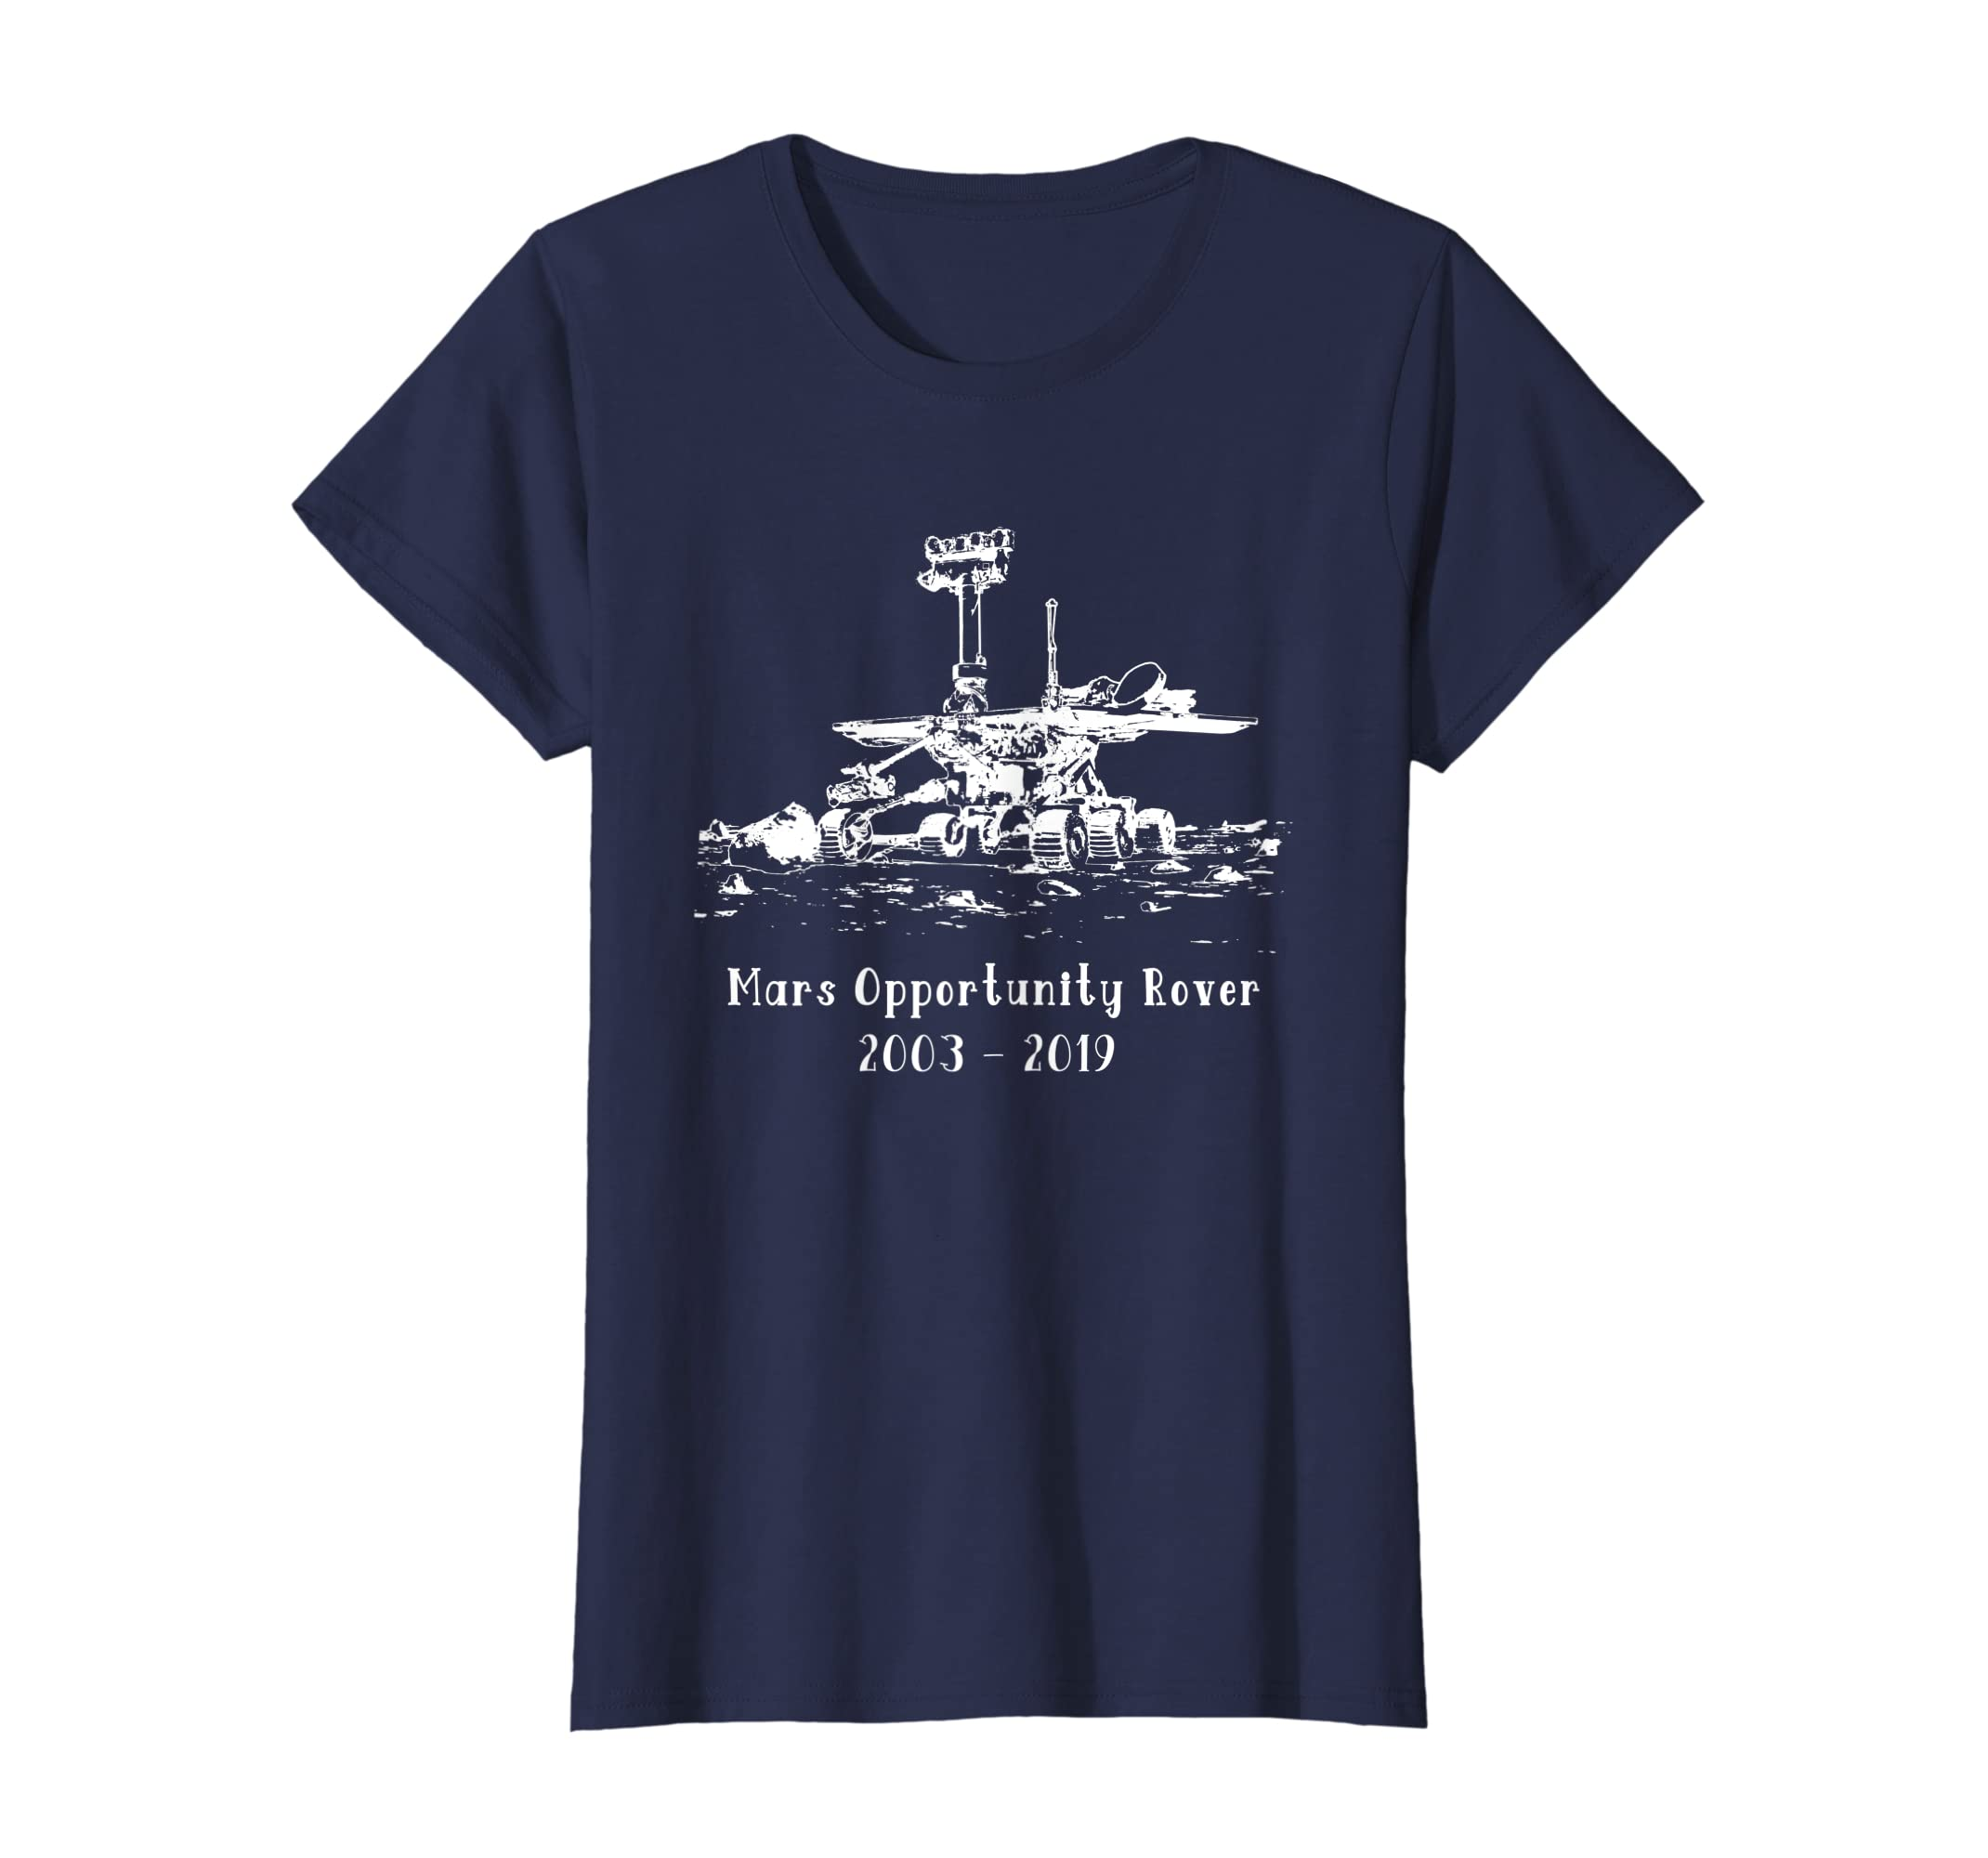 40a89de8f Amazon.com: Mars Rover Opportunity T-shirt Commemorative: Clothing